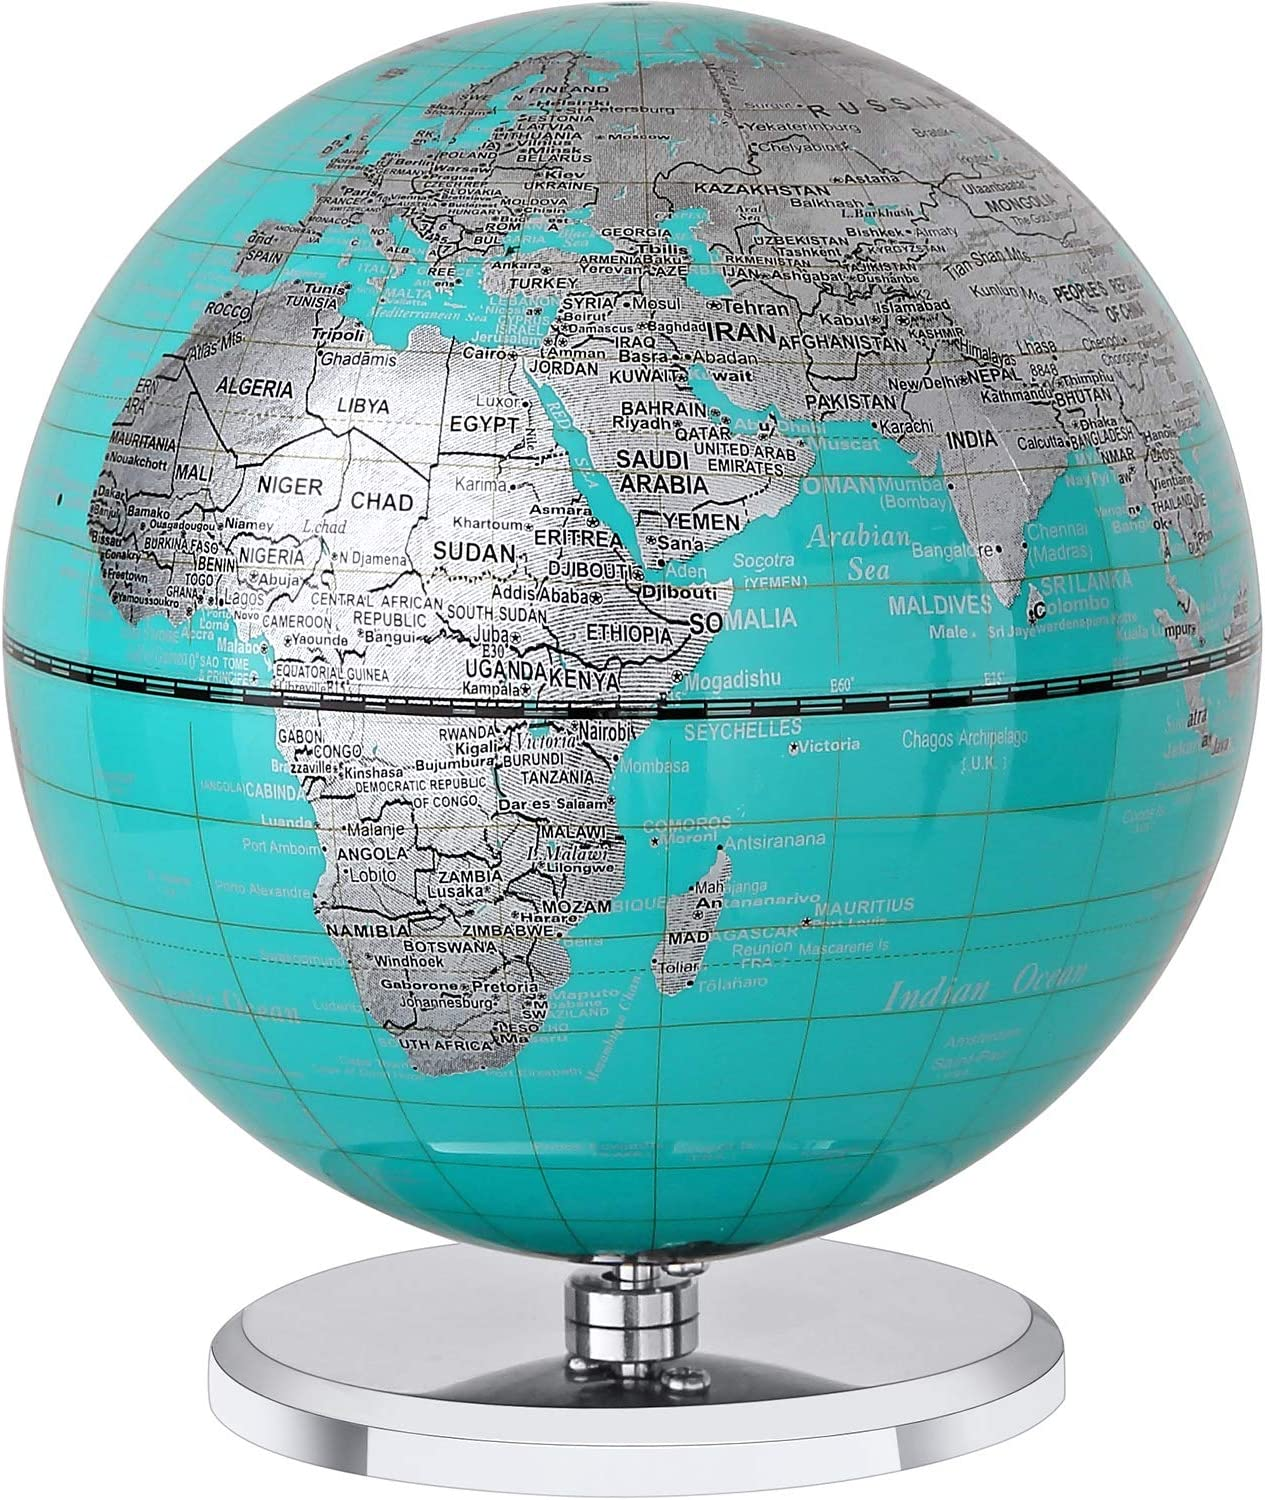 FUN GLOBE World Globe Desktop Geographic Interactive Earth Globes with Music for Kids & Adults for Educational Toys/Office Supplies/Indoor Decorations/Holiday Gift (Sky Blue, 5 Inches)